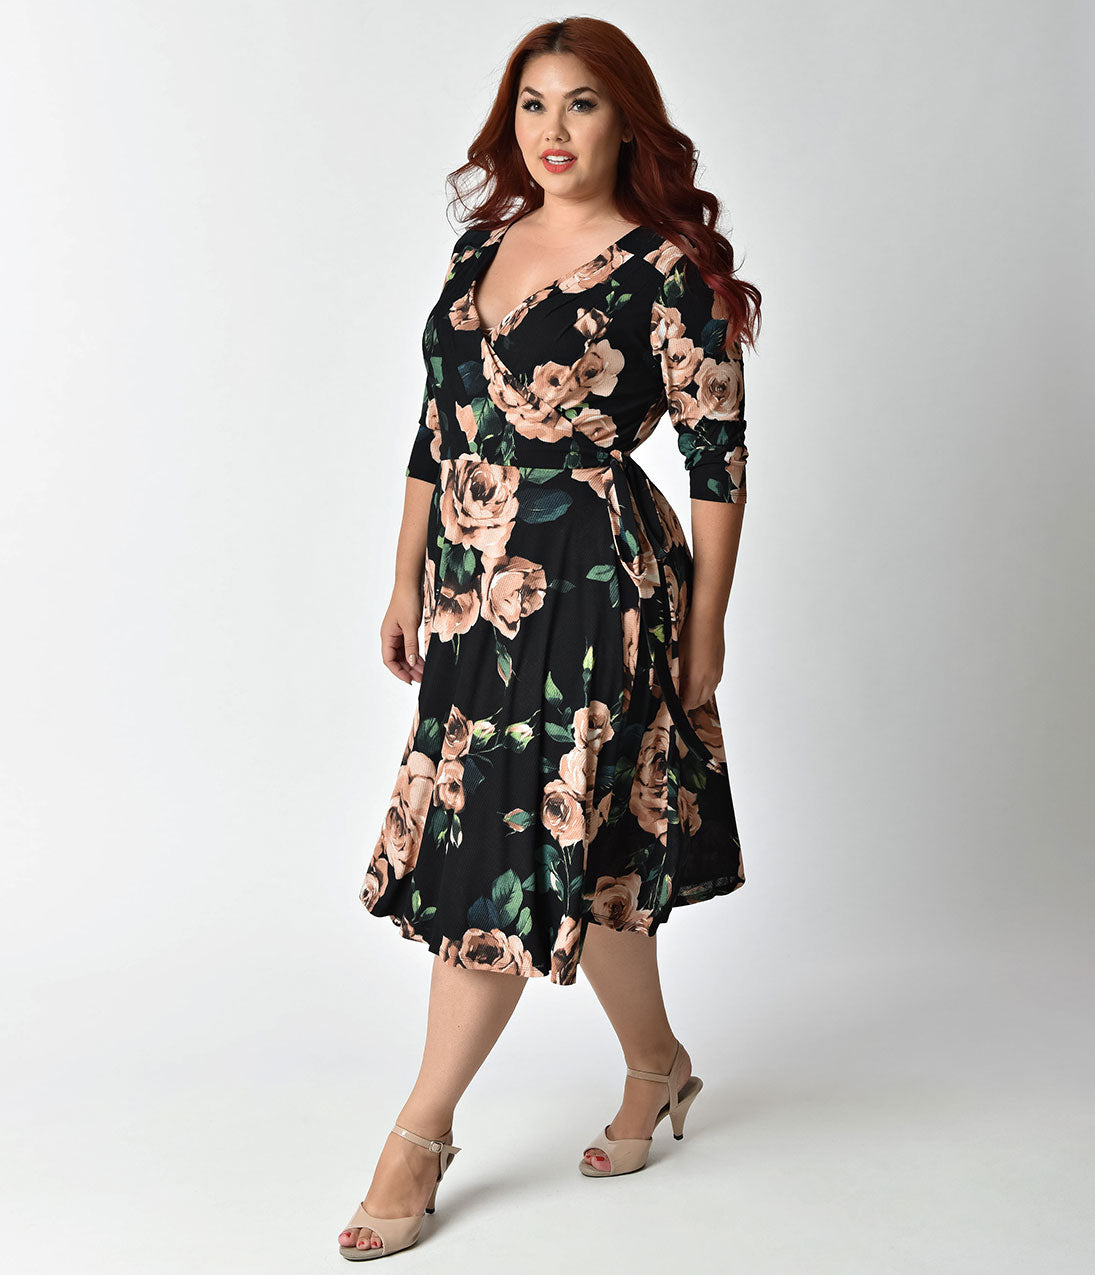 1940s Plus Size Dresses | Swing Dress, Tea Dress Unique Vintage Plus Size 1940s Style Black  Light Pink Roses Print Kelsie Wrap Dress $53.00 AT vintagedancer.com